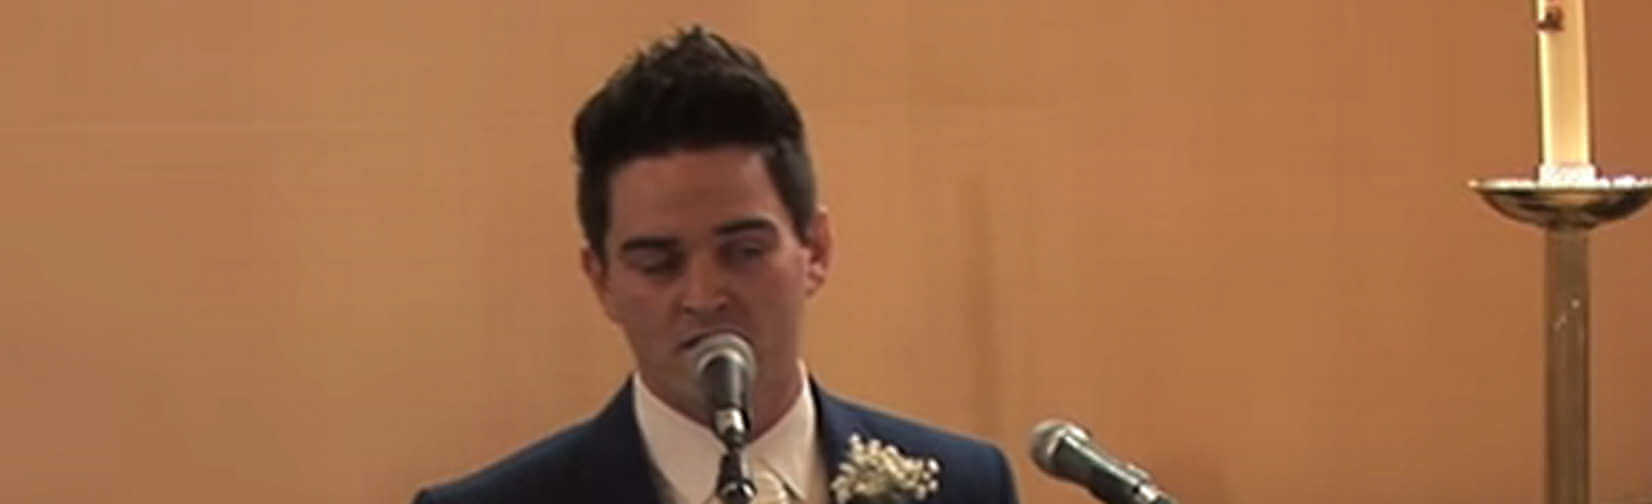 Dean Conaghan broke into song as his beautiful bride sat and watched him in awe